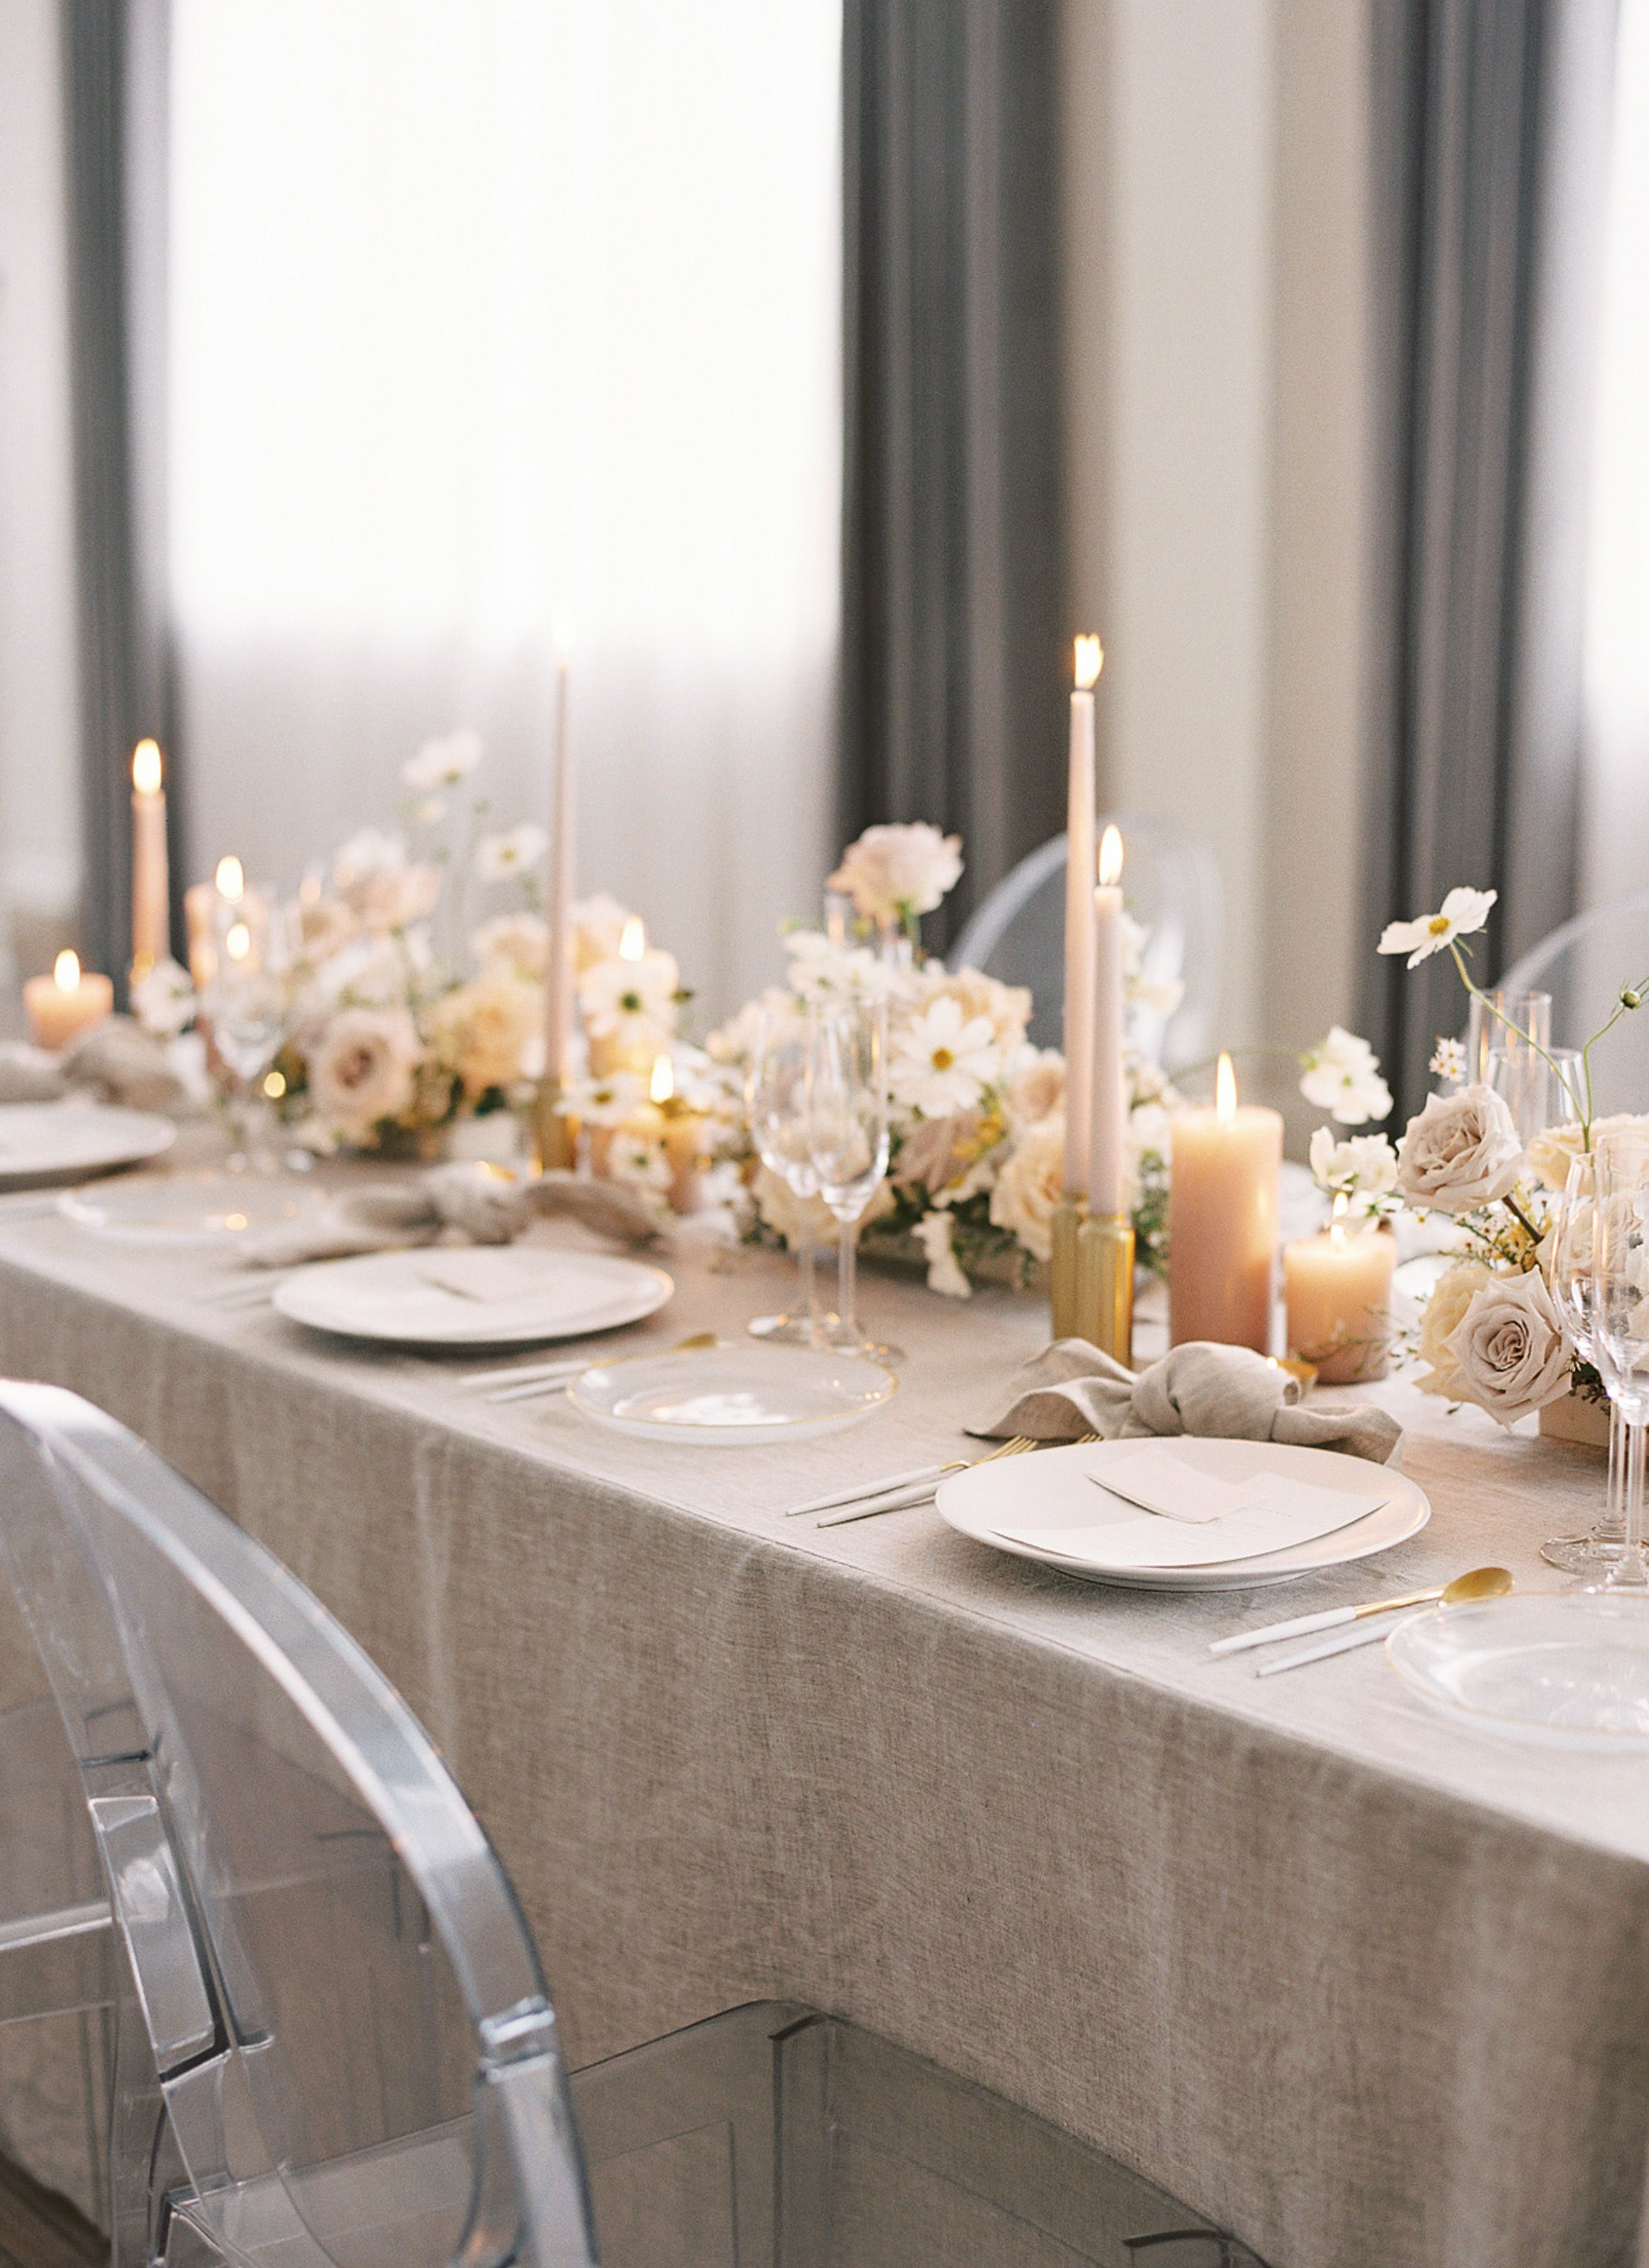 Timeless and Ethereal Wedding Inspiration at The Walper Hotel is part of Wedding tablescapes - Modern minimalism mixed with romantic touches of elegance and ethereal décor  at first, it's hard to imagine how this design combination would look… but after seeing this shoot from Rainbow Chan